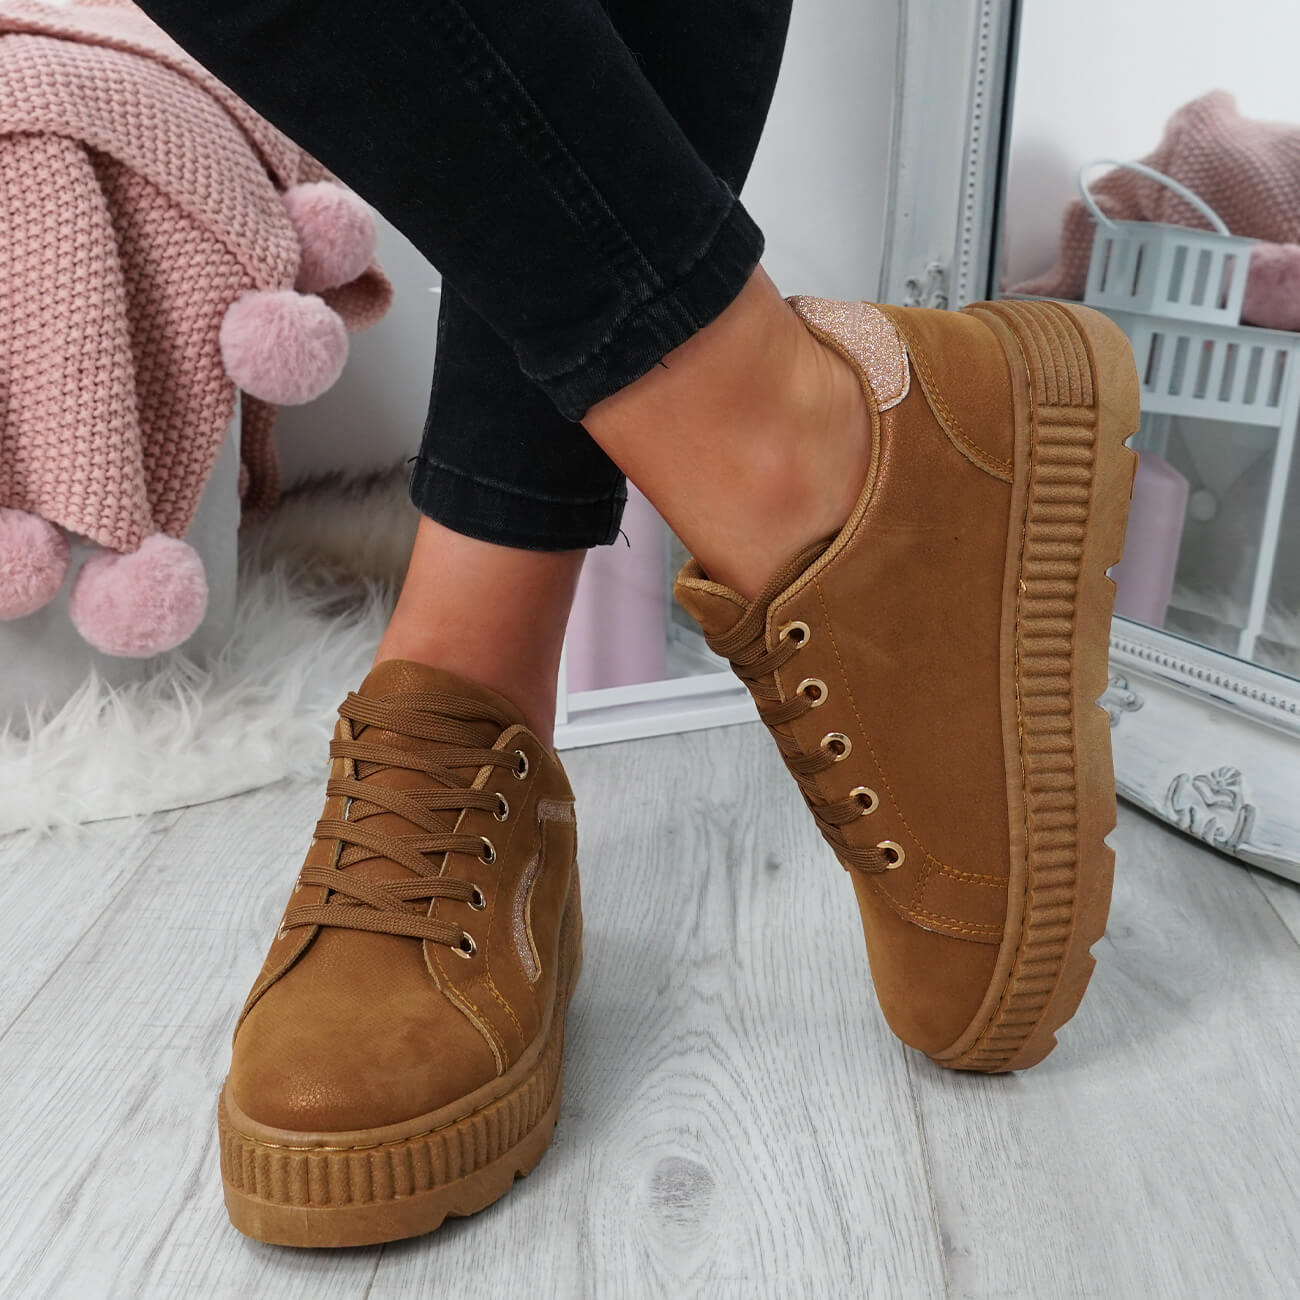 WOMENS-LADIES-LACE-UP-PLATFORM-TRAINERS-PLIMSOLL-SKATE-SNEAKERS-SHOES-SIZE thumbnail 13